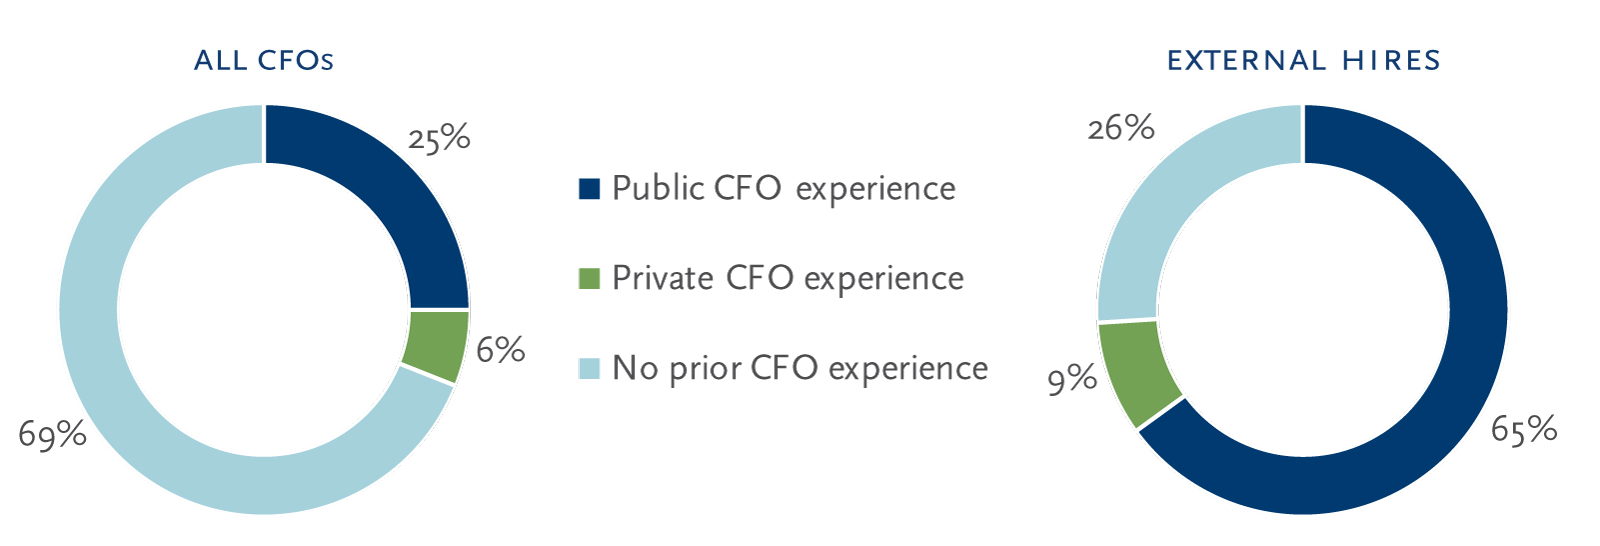 CFOs with prior CFO experience